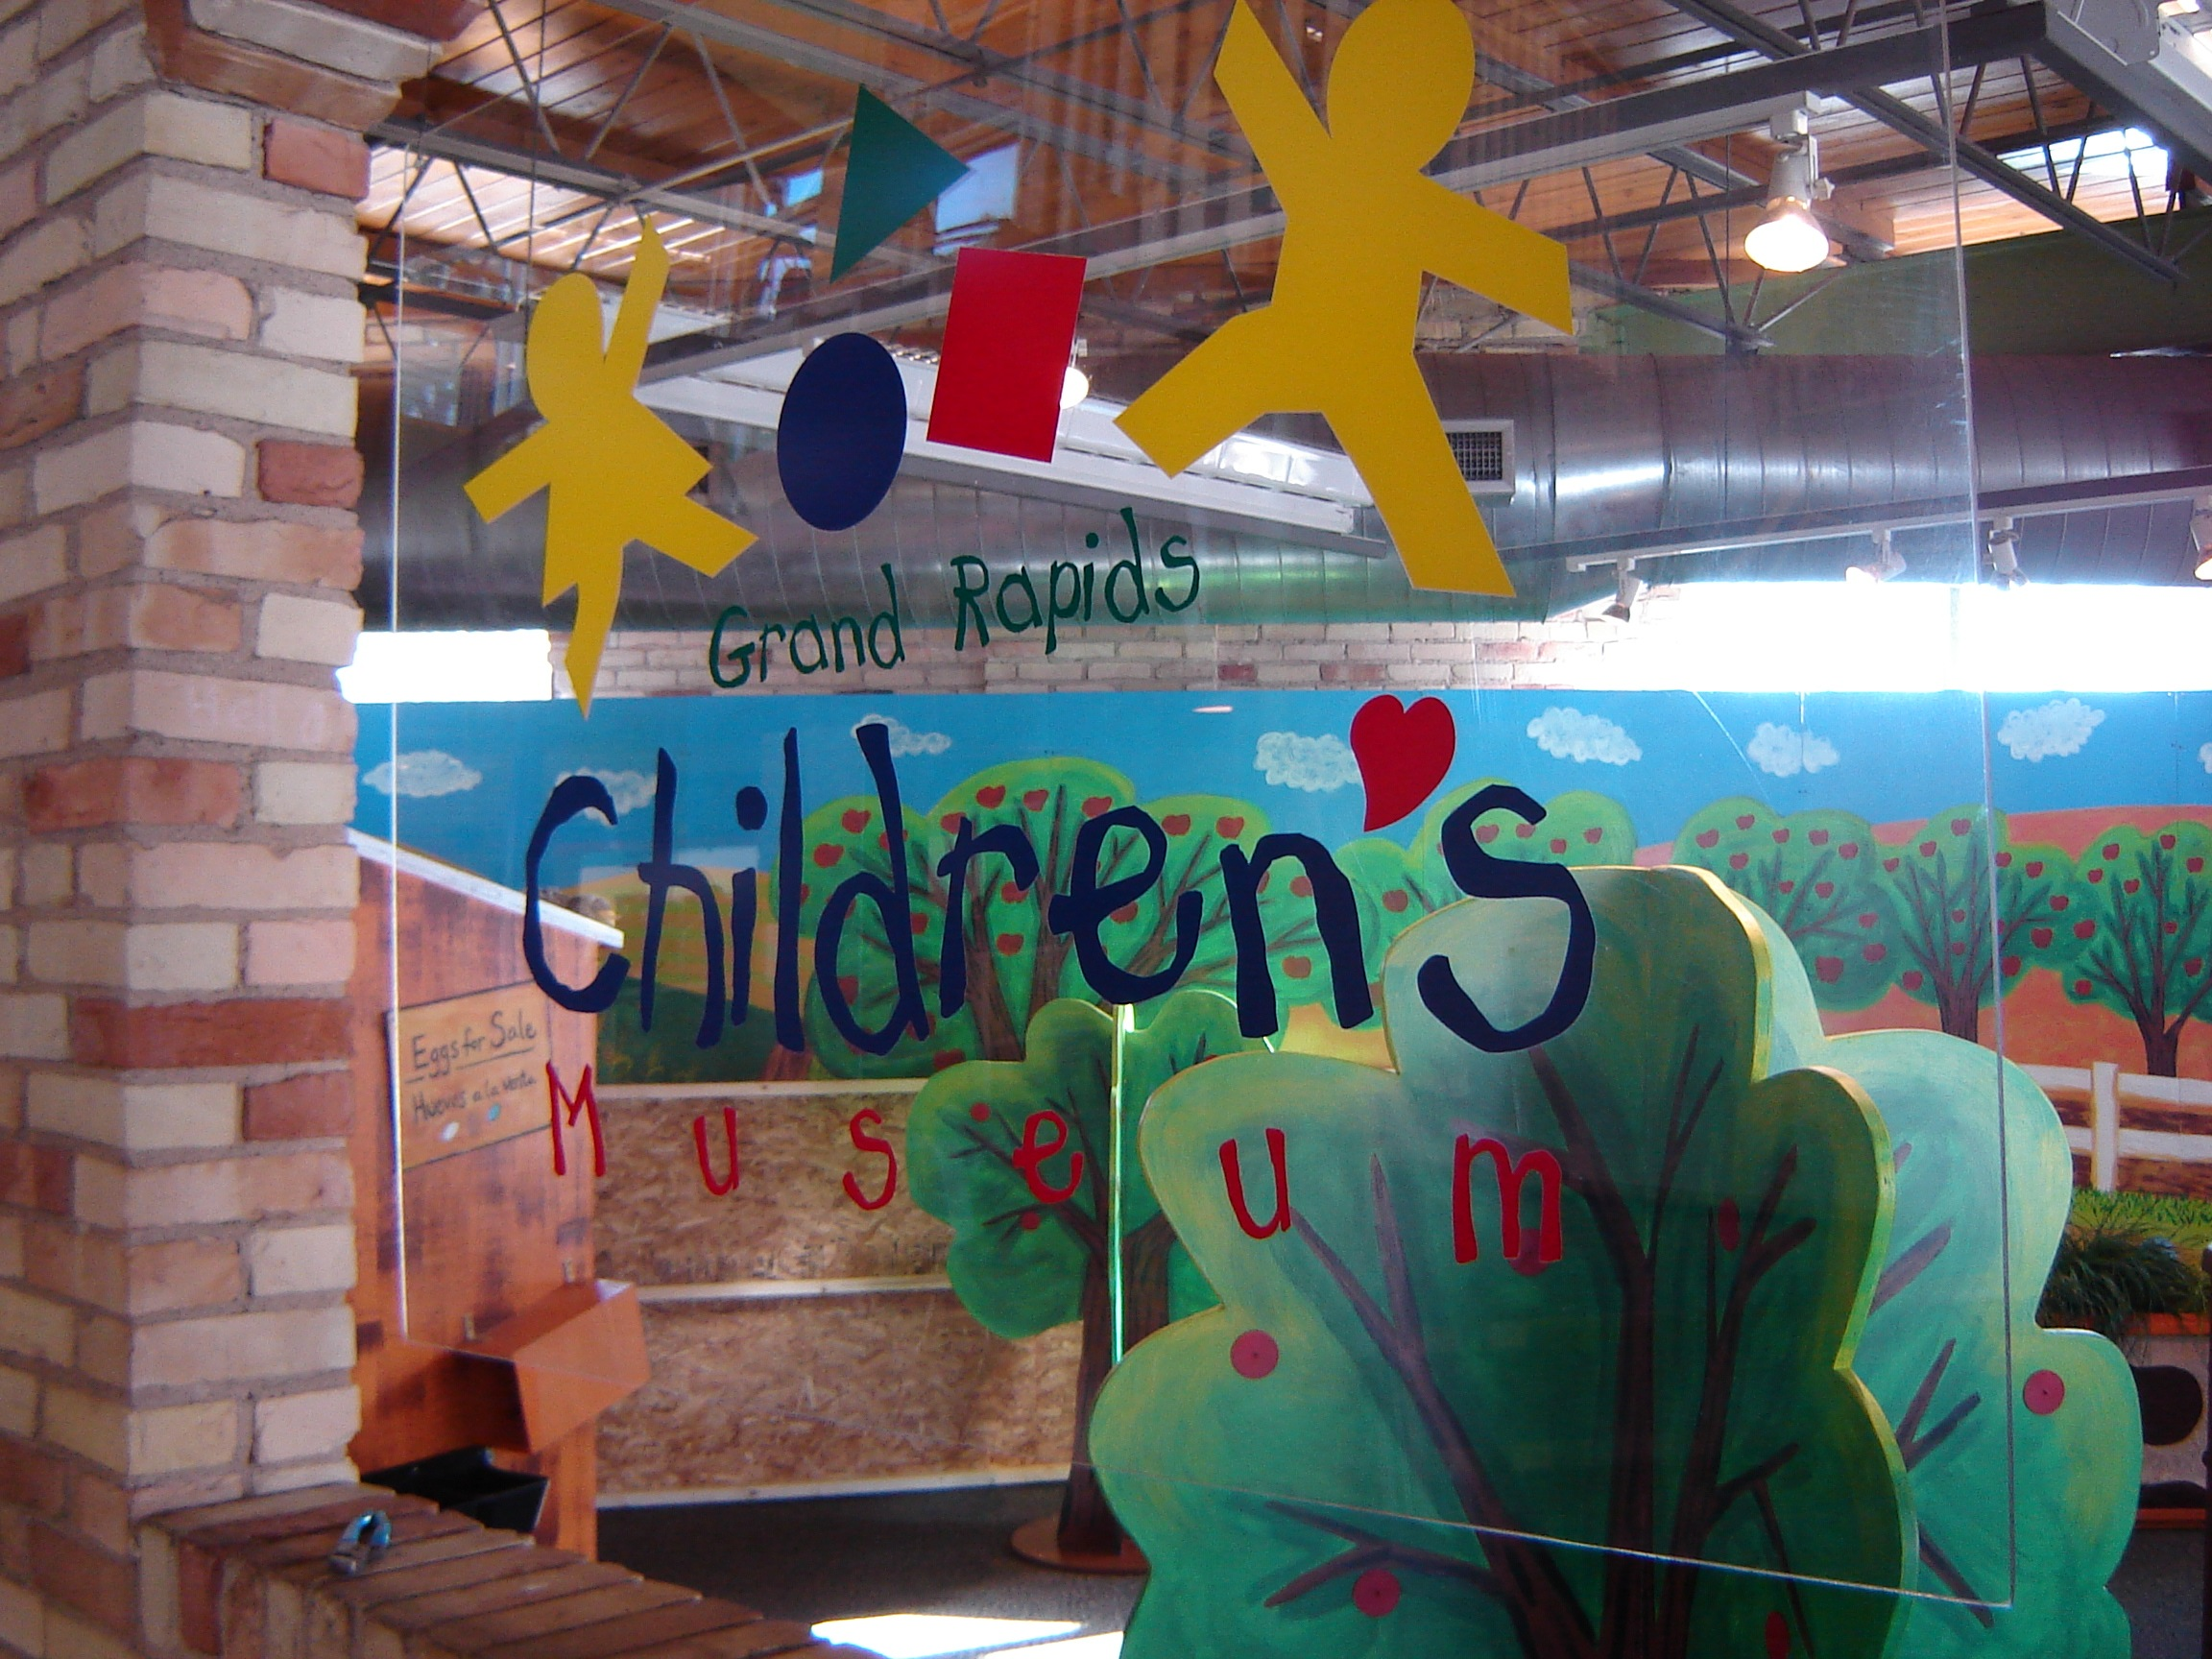 Grand Rapids Children's Museum